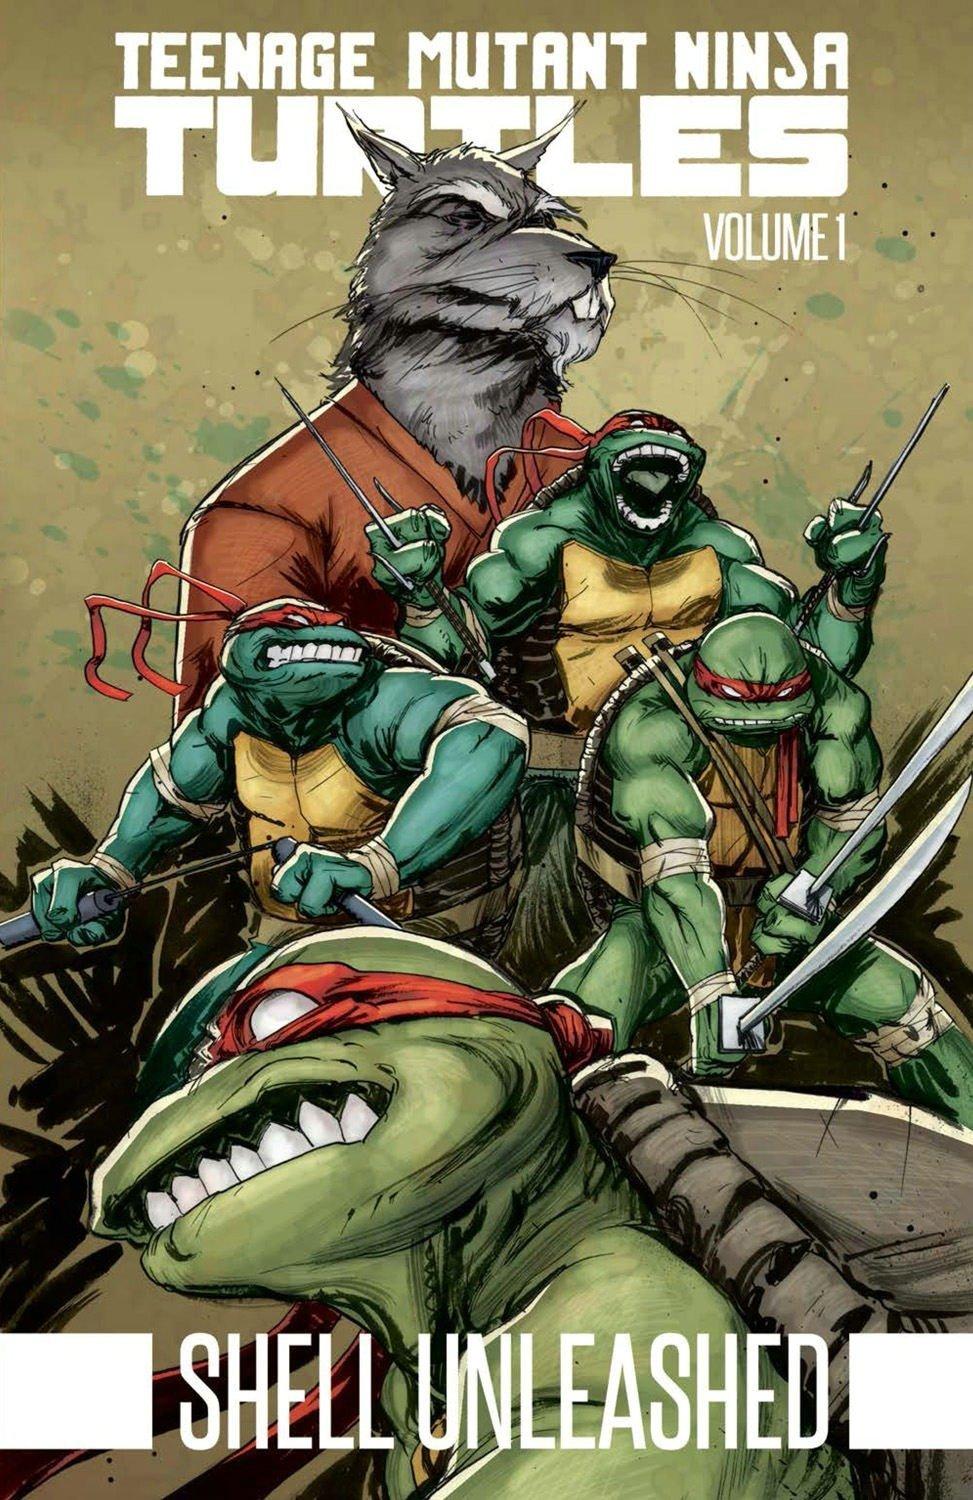 Teenage Mutant Ninja Turtles Volume 1: Shell Unleashed ...